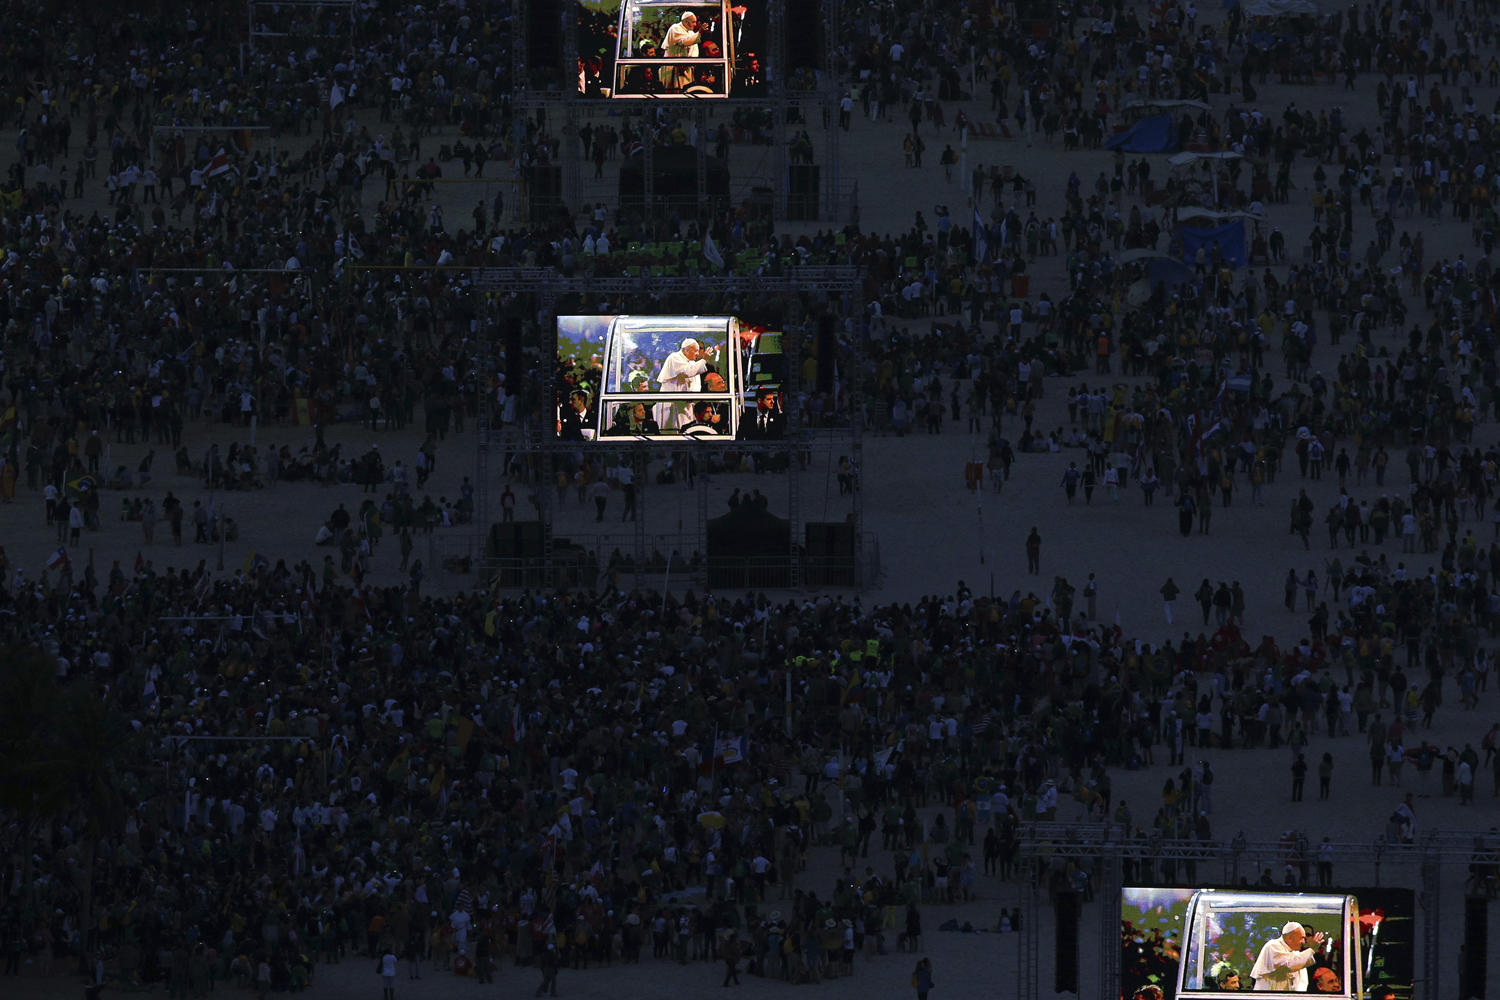 July 26, 2013. Pope Francis is projected on screens at Copacabana beach in Rio de Janeiro.